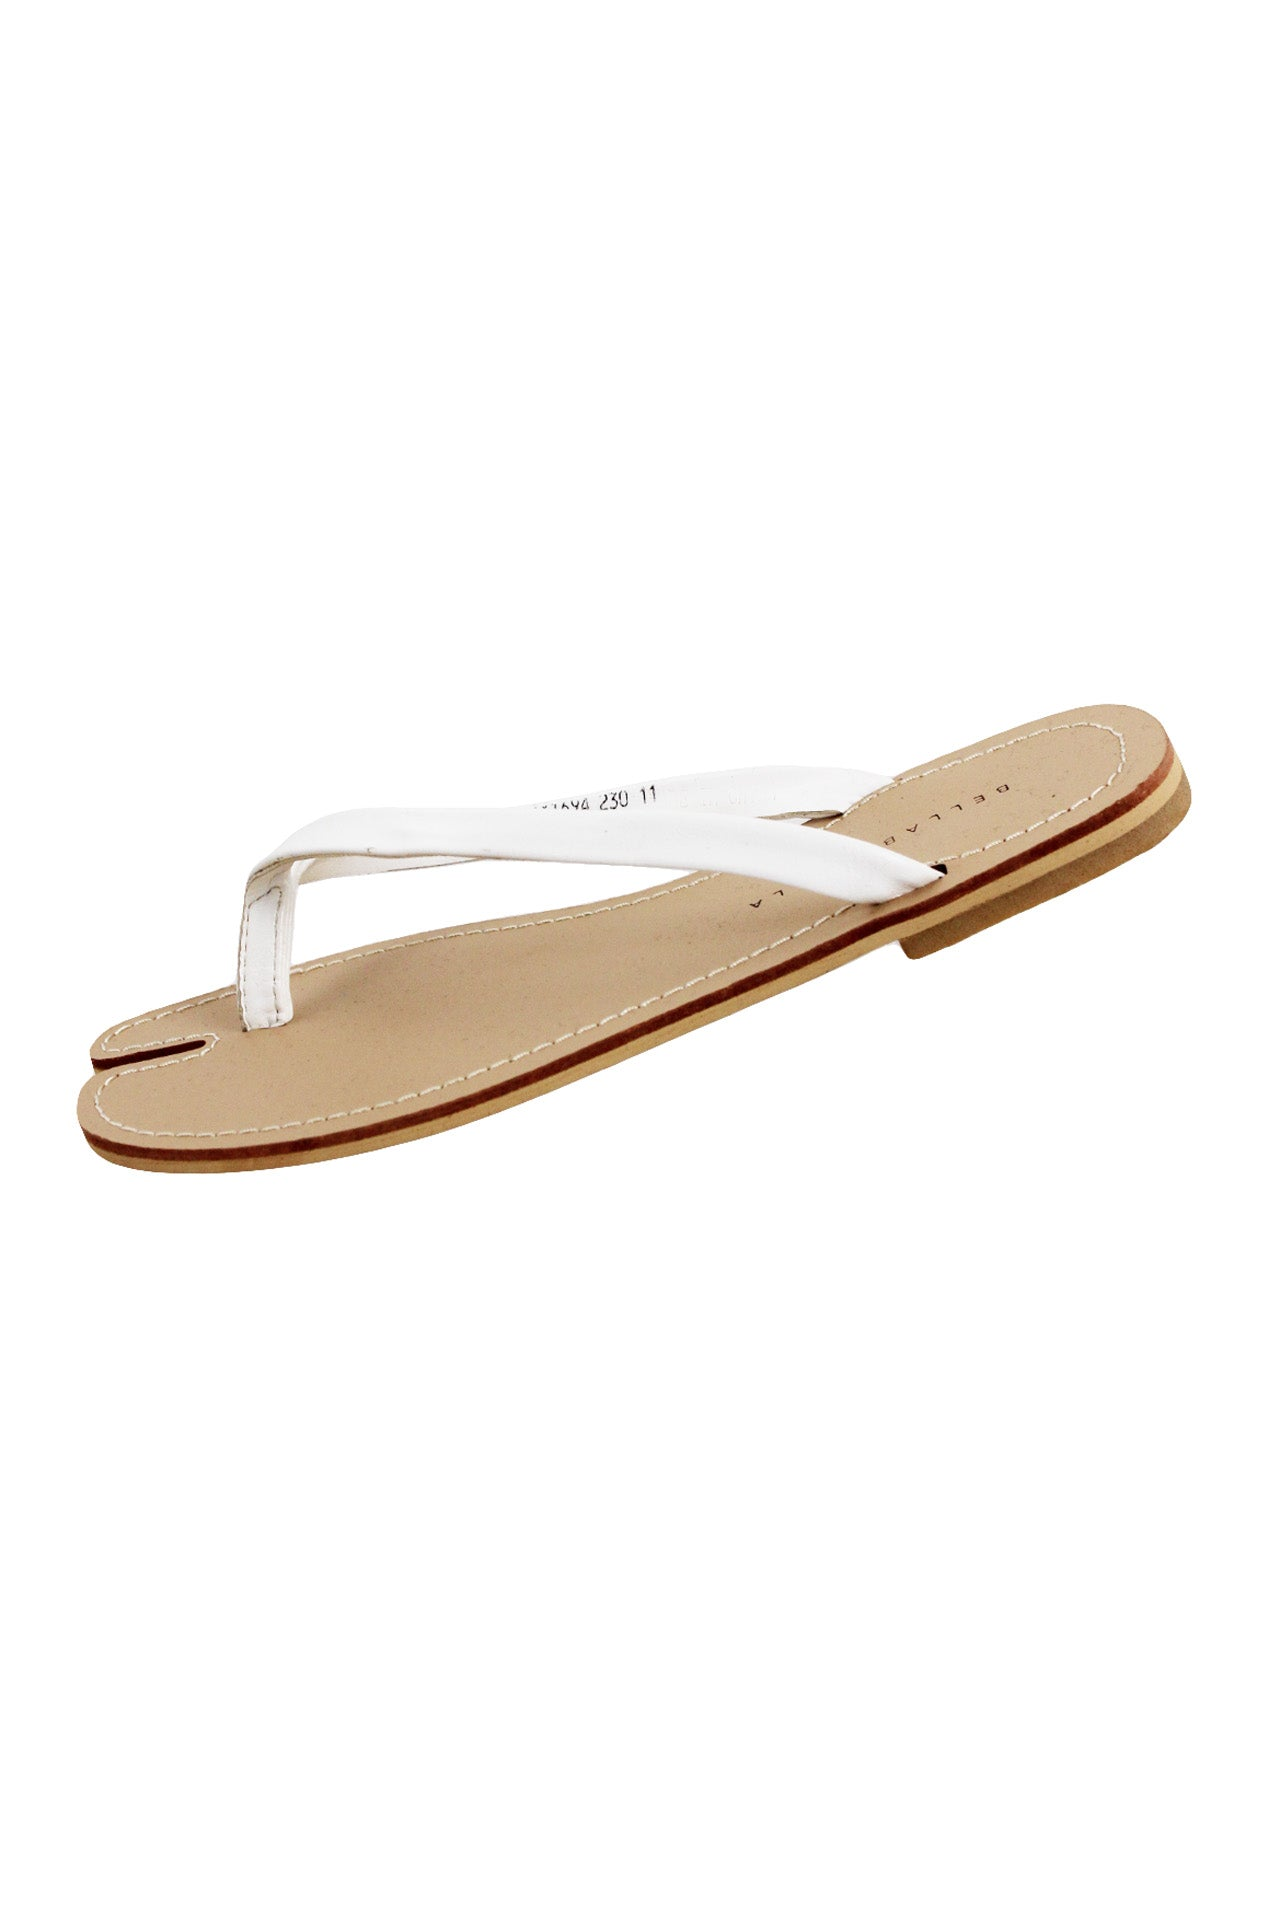 description: bella by bella white flip flops. featuring a tan split-toe sole.